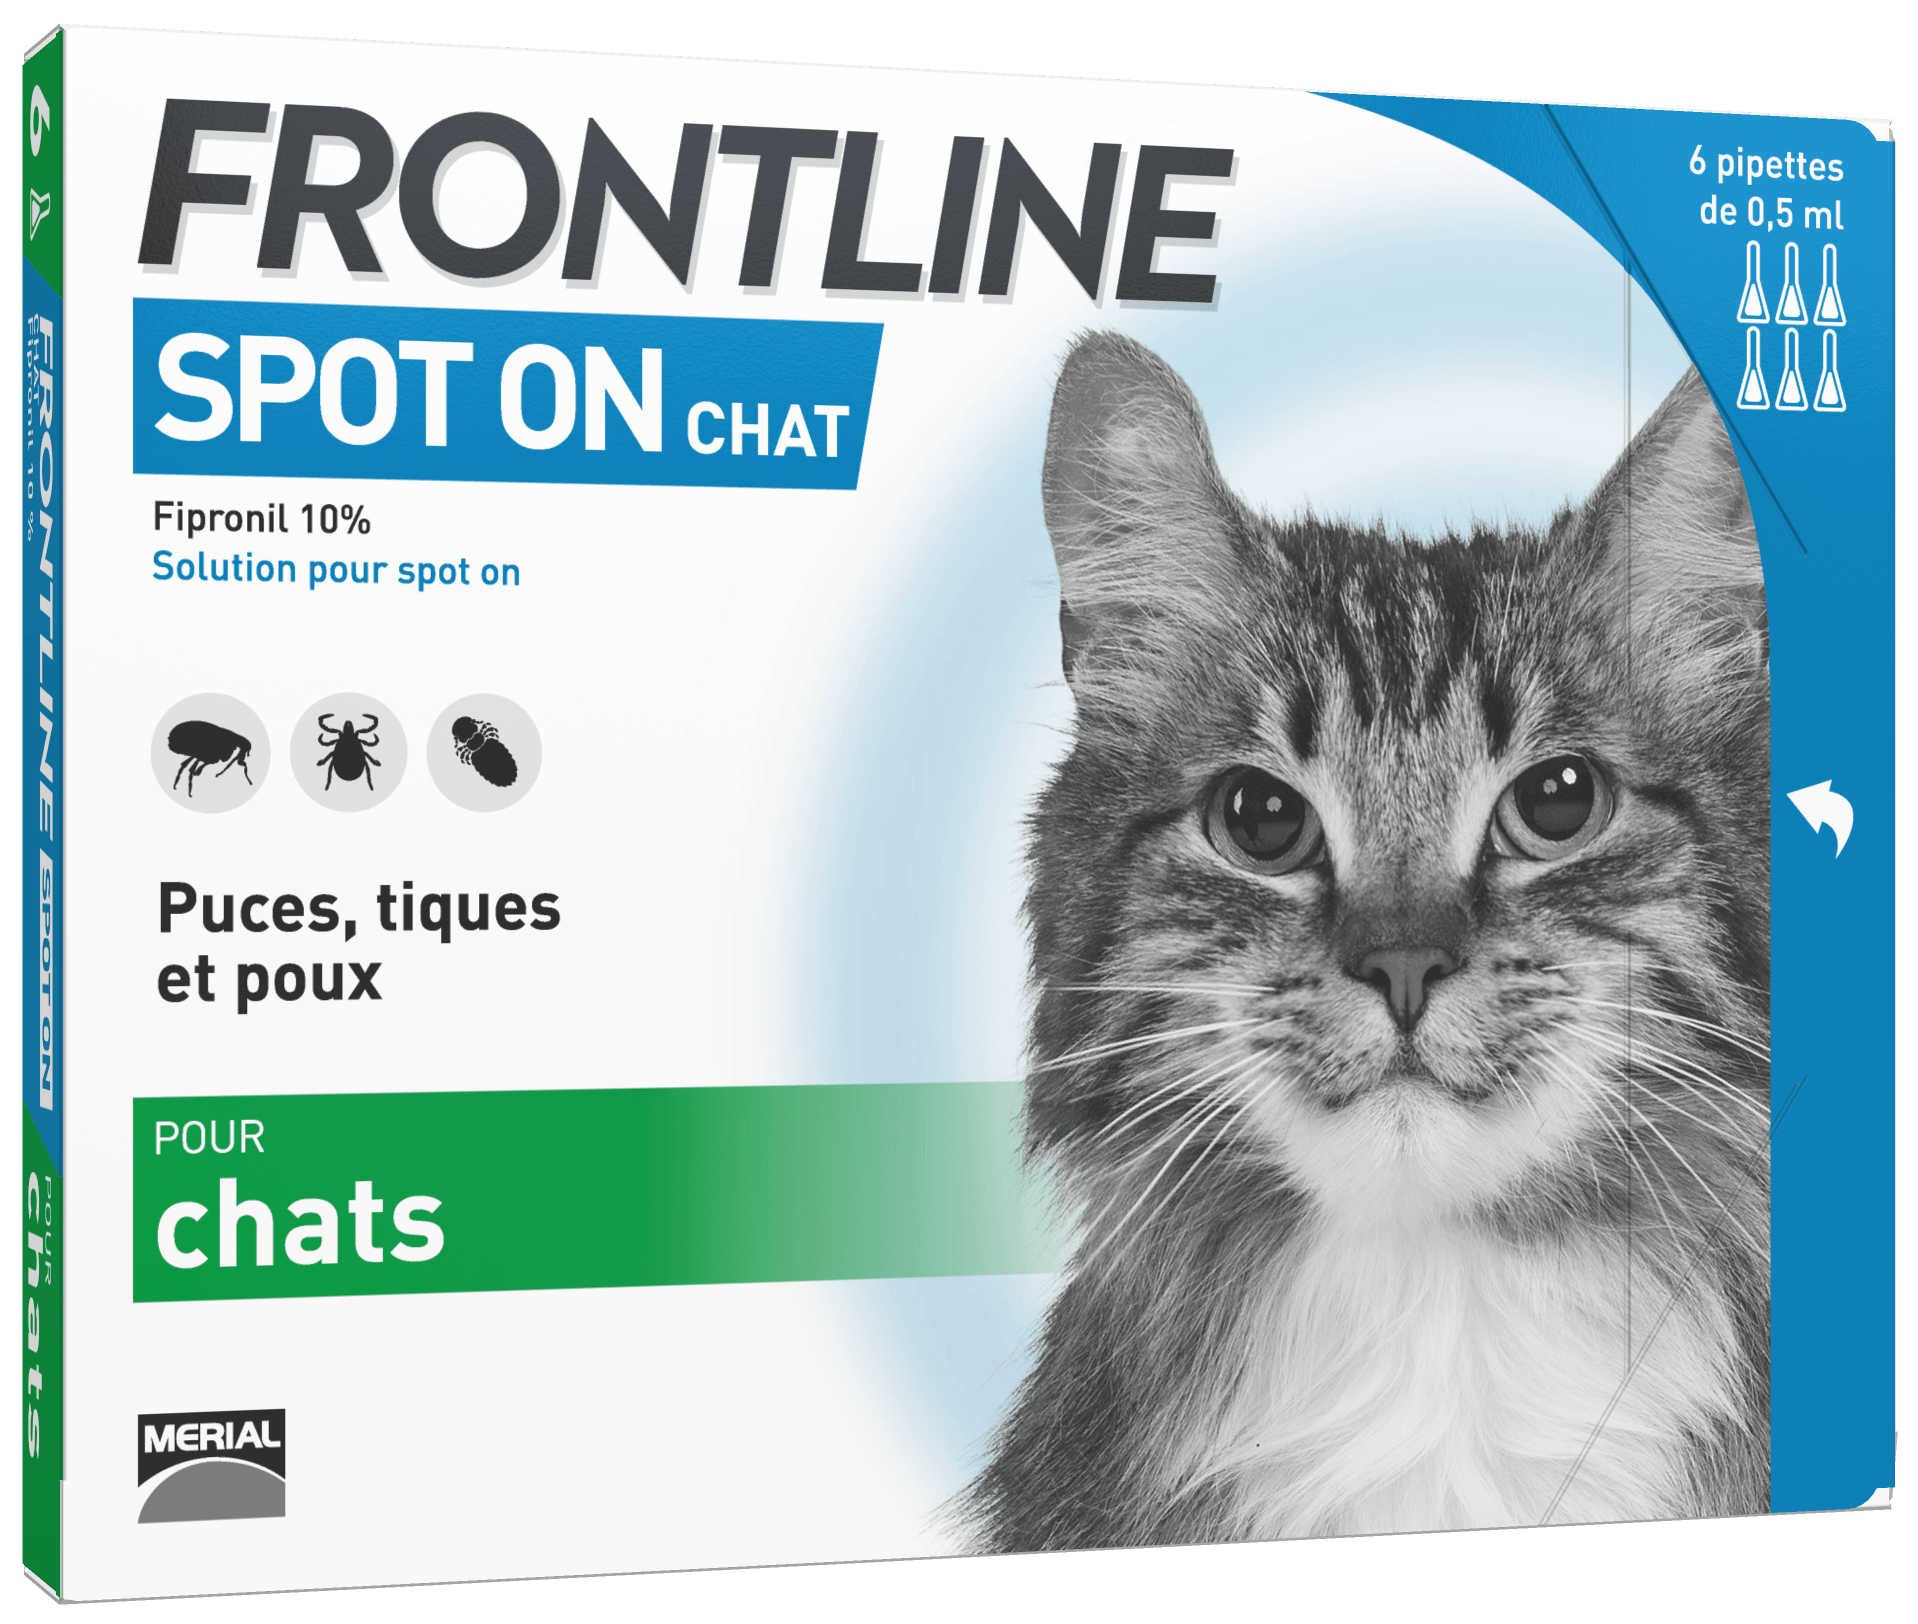 frontline pipettes chat spot-on